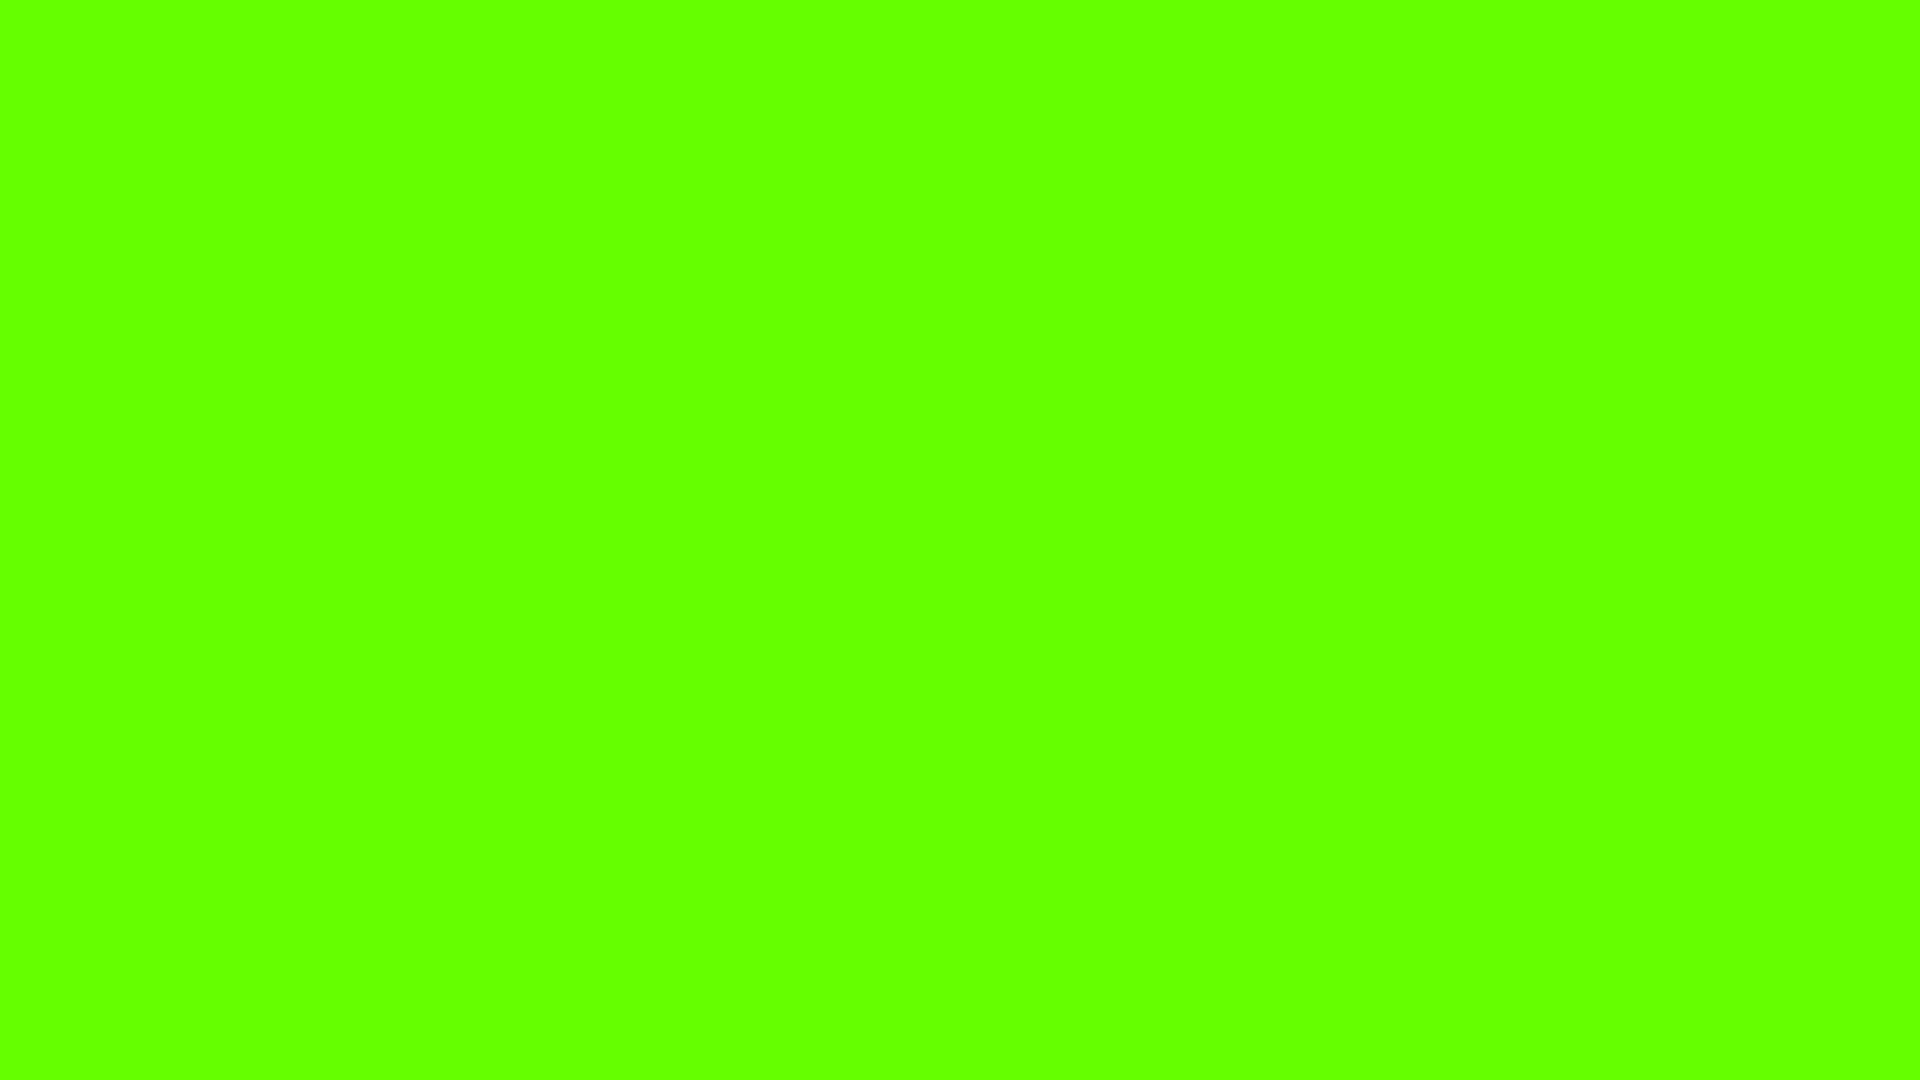 neon green backgrounds. Black Bedroom Furniture Sets. Home Design Ideas